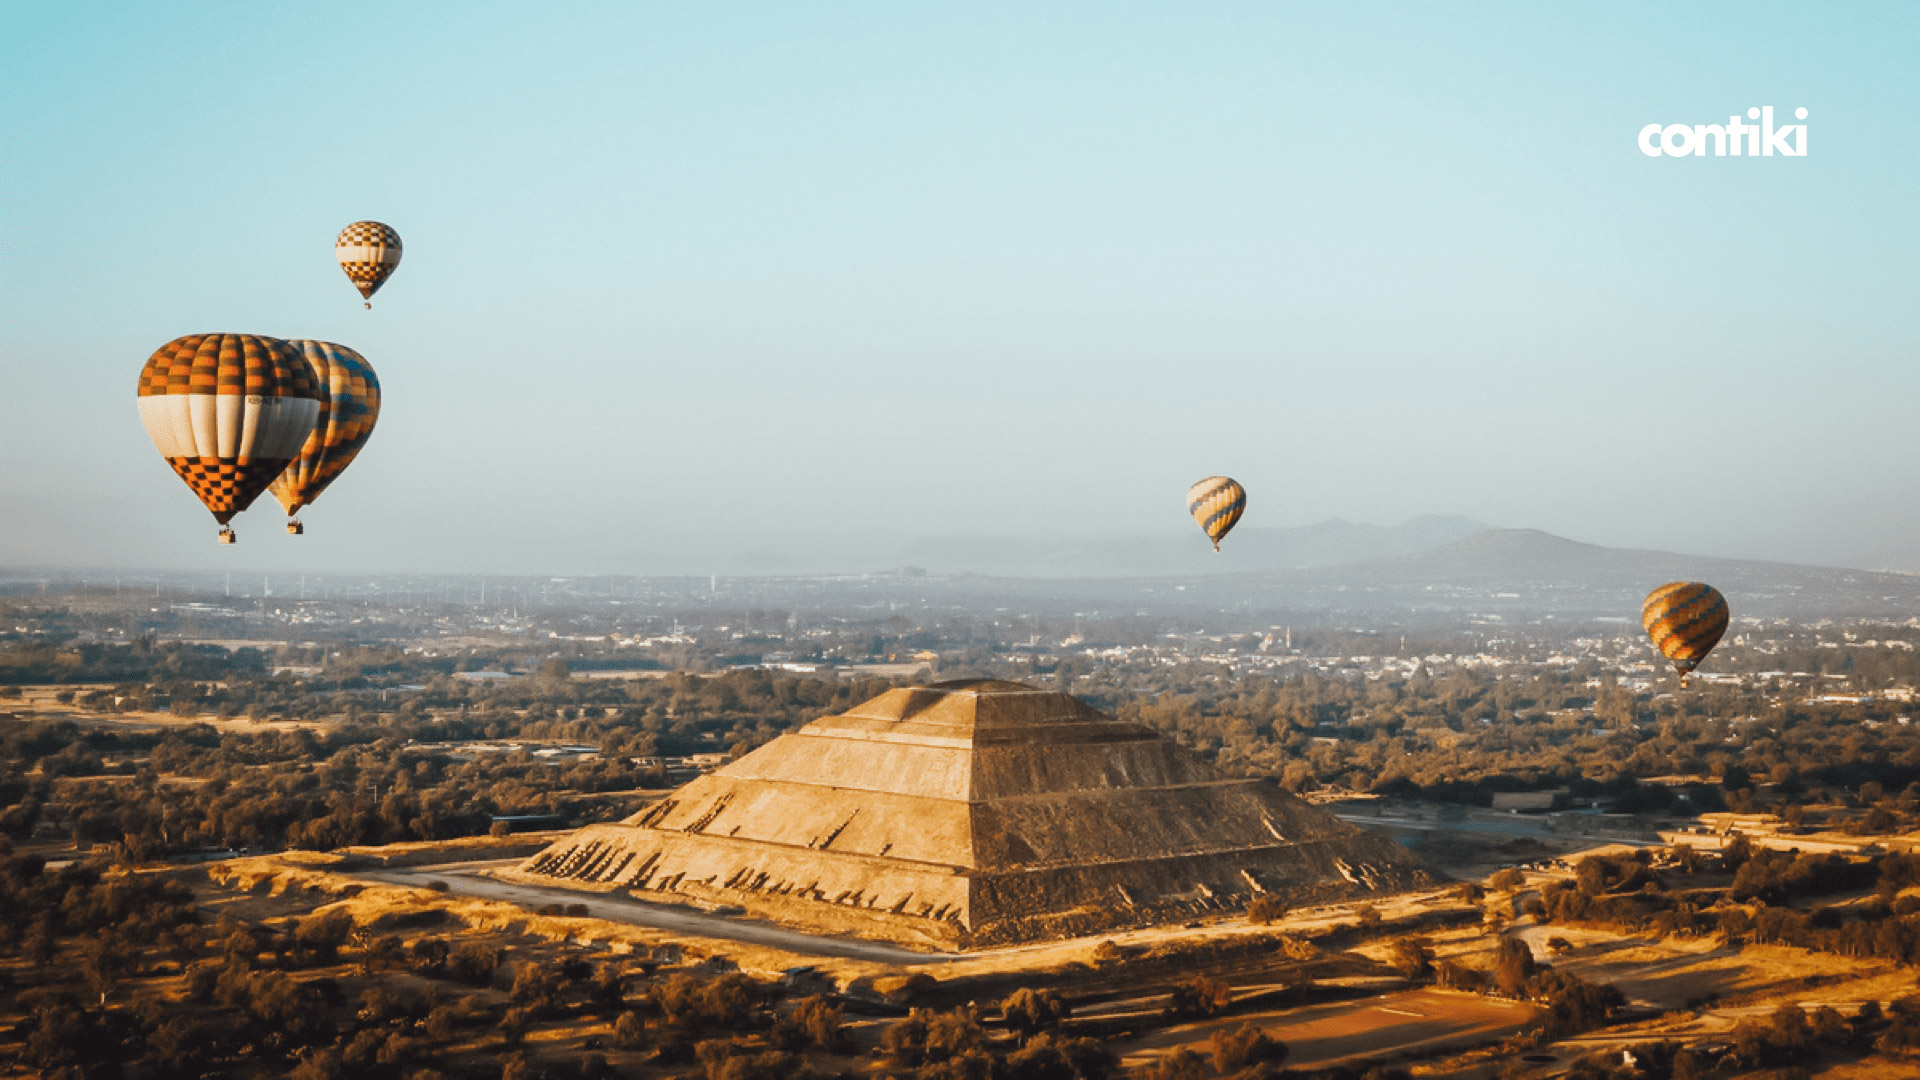 hot-air balloon flight in Teotihuacan, Mexico